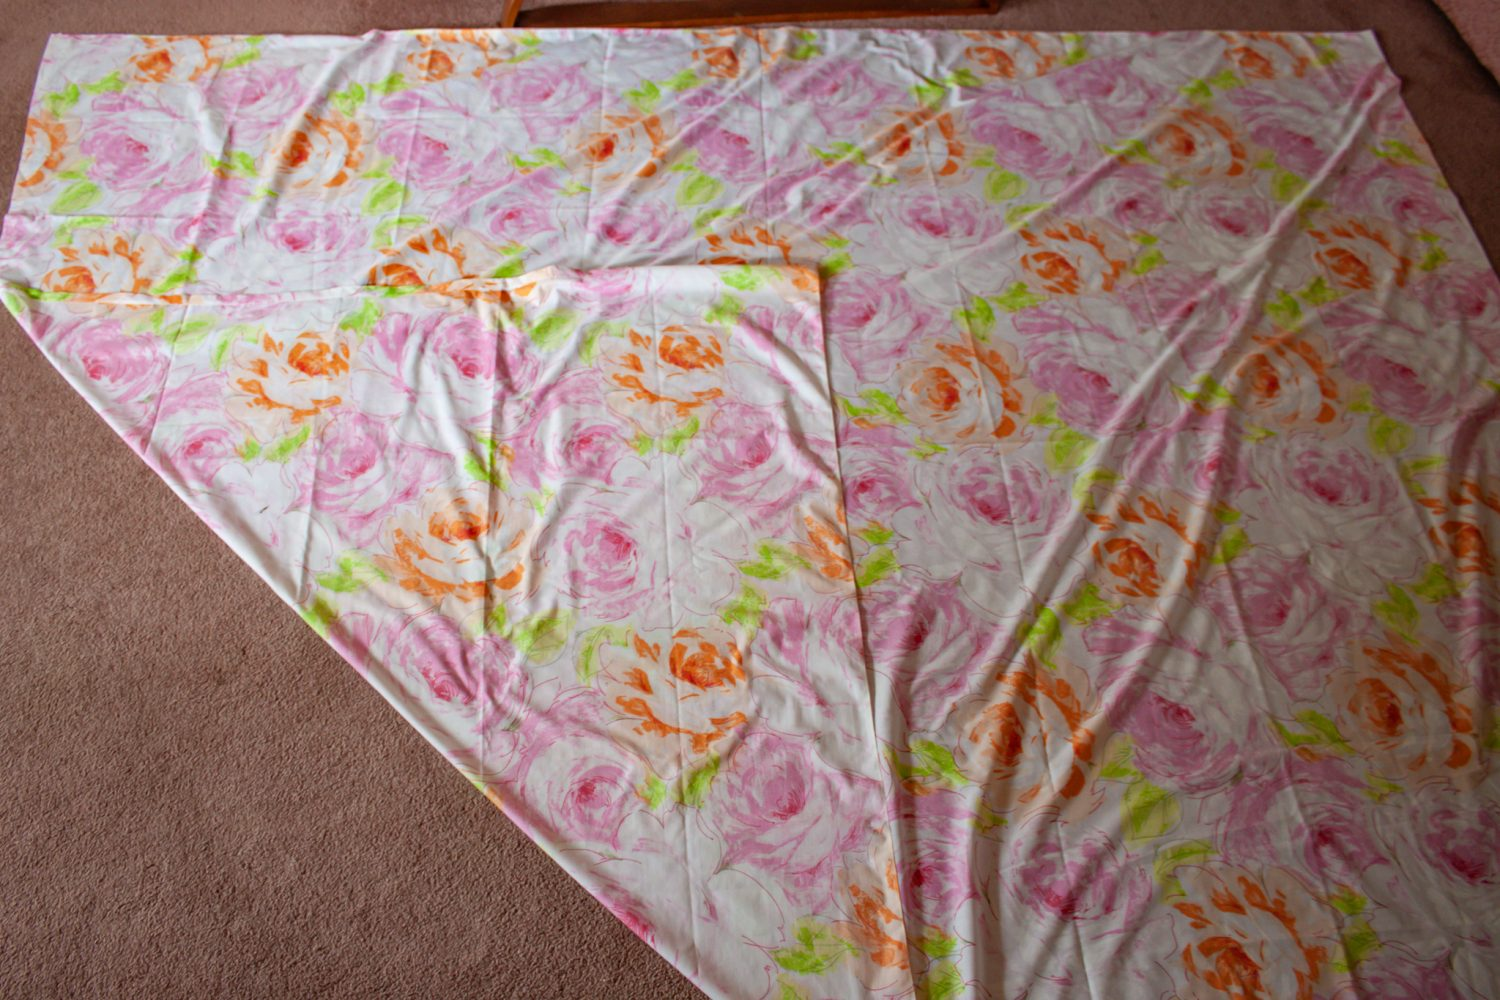 Fabric laid out on floor with one corner folded up to form a triangle